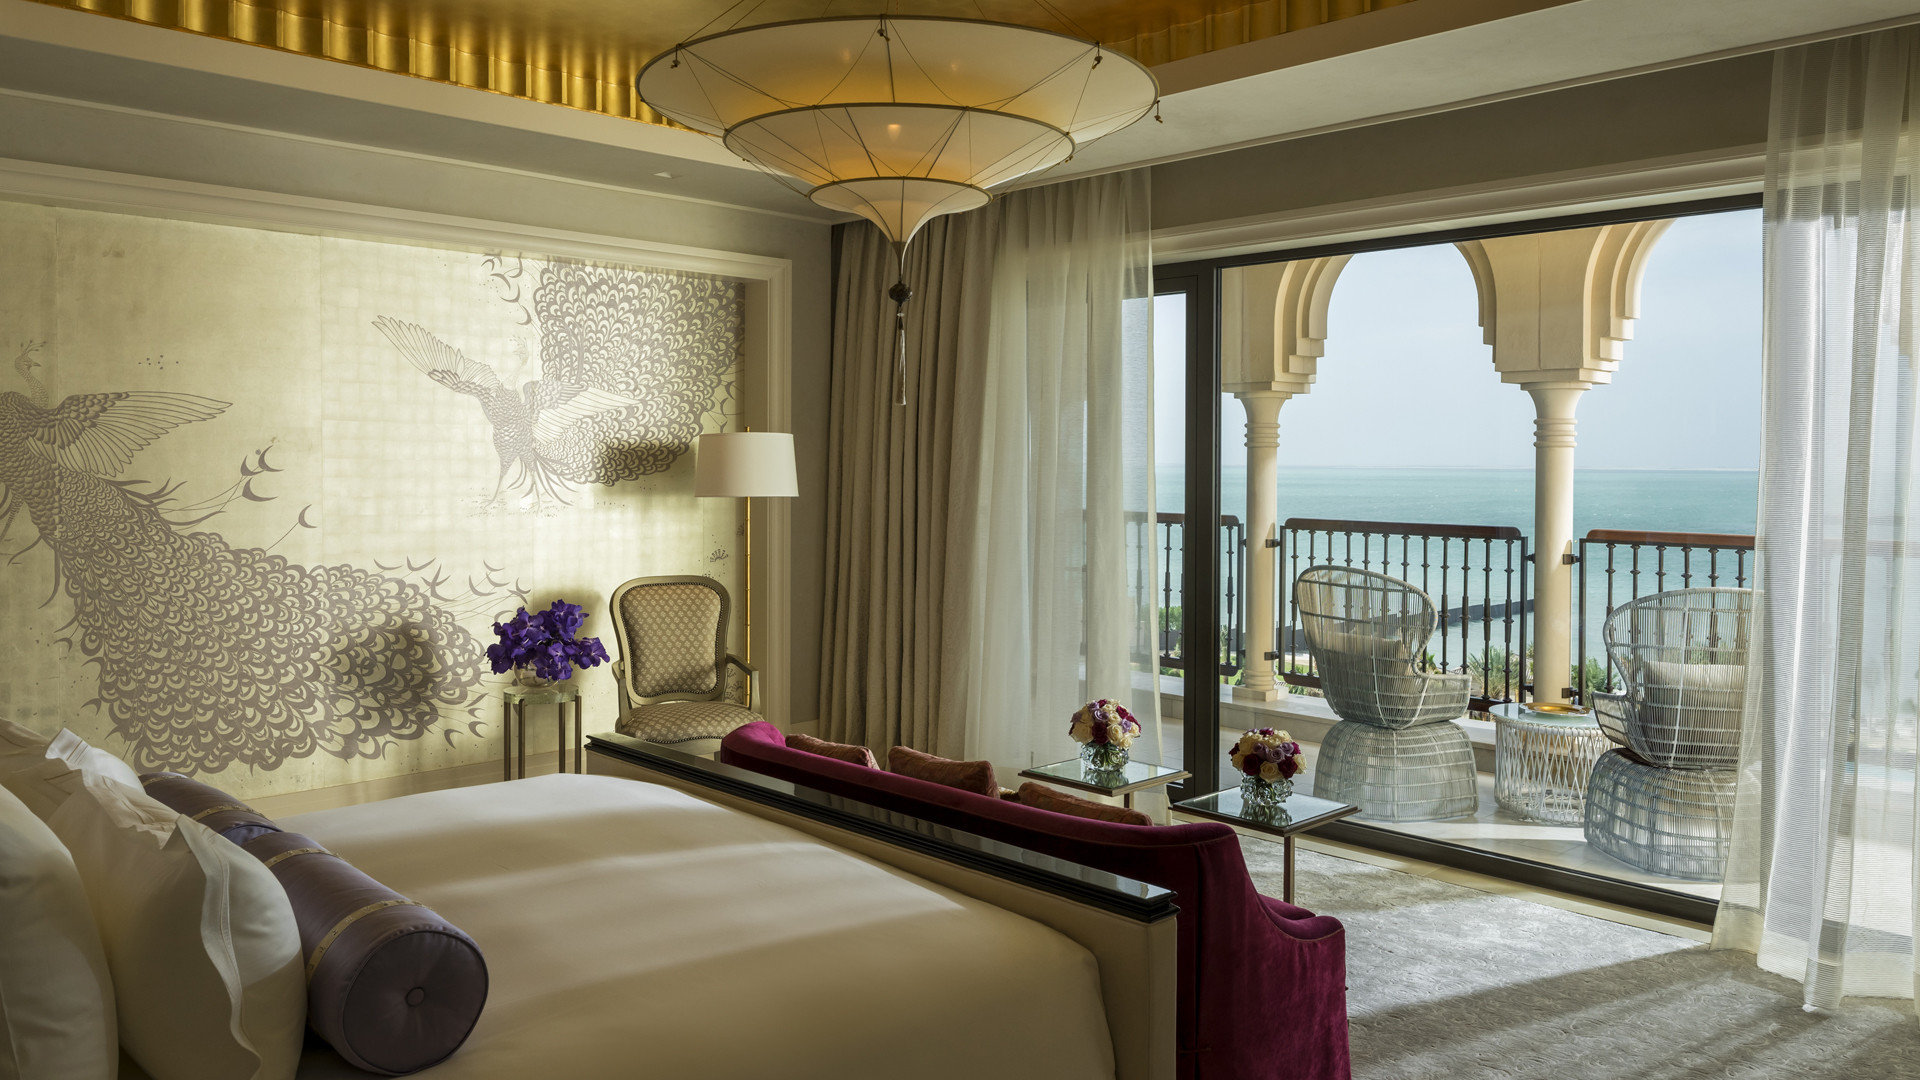 Four seasons resort dubai « bamo